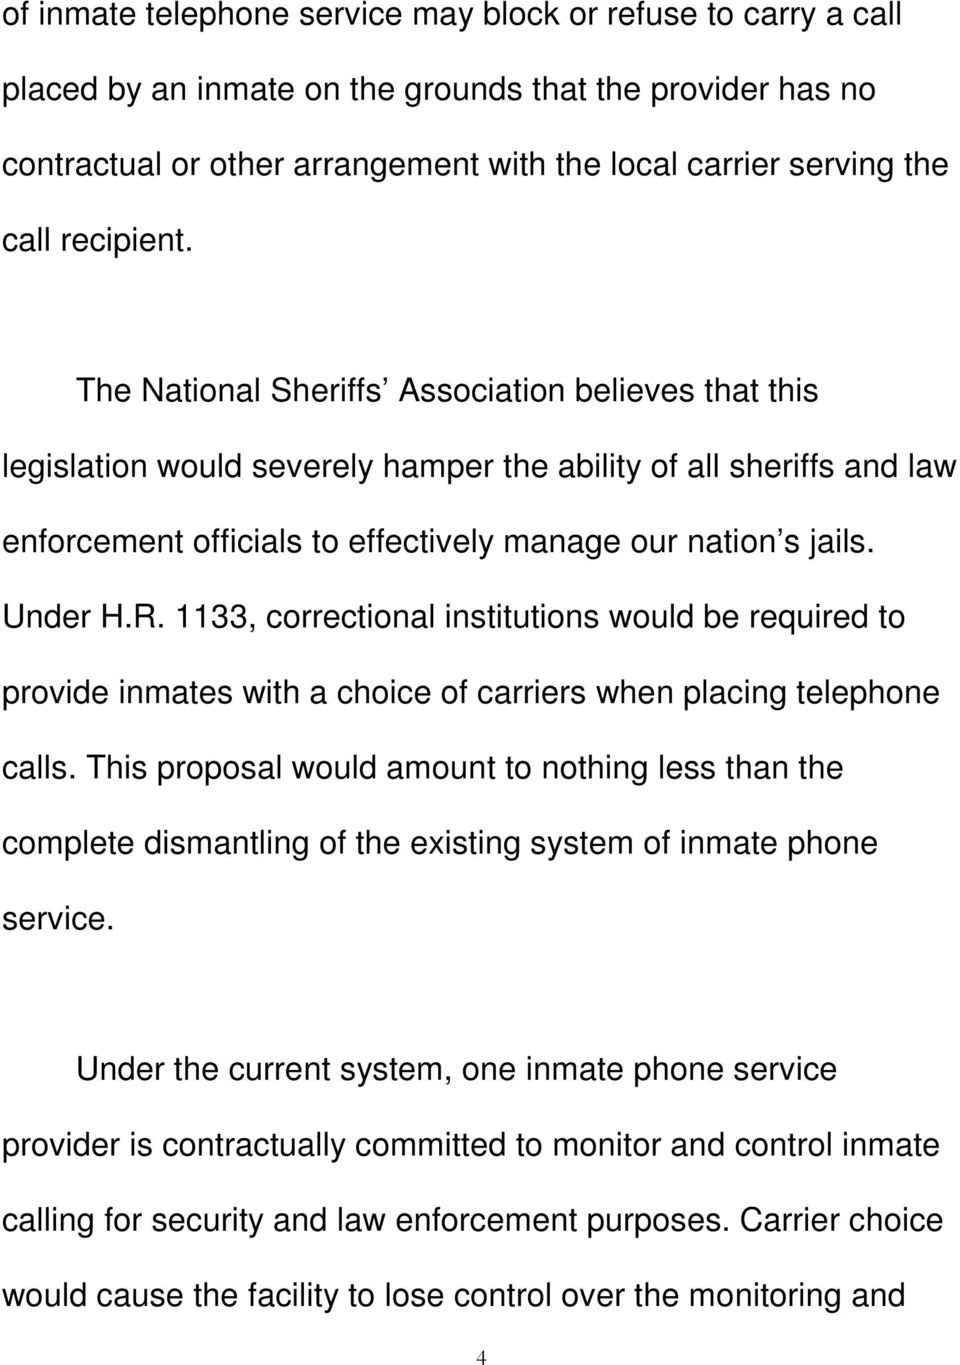 Under H.R. 1133, correctional institutions would be required to provide inmates with a choice of carriers when placing telephone calls.